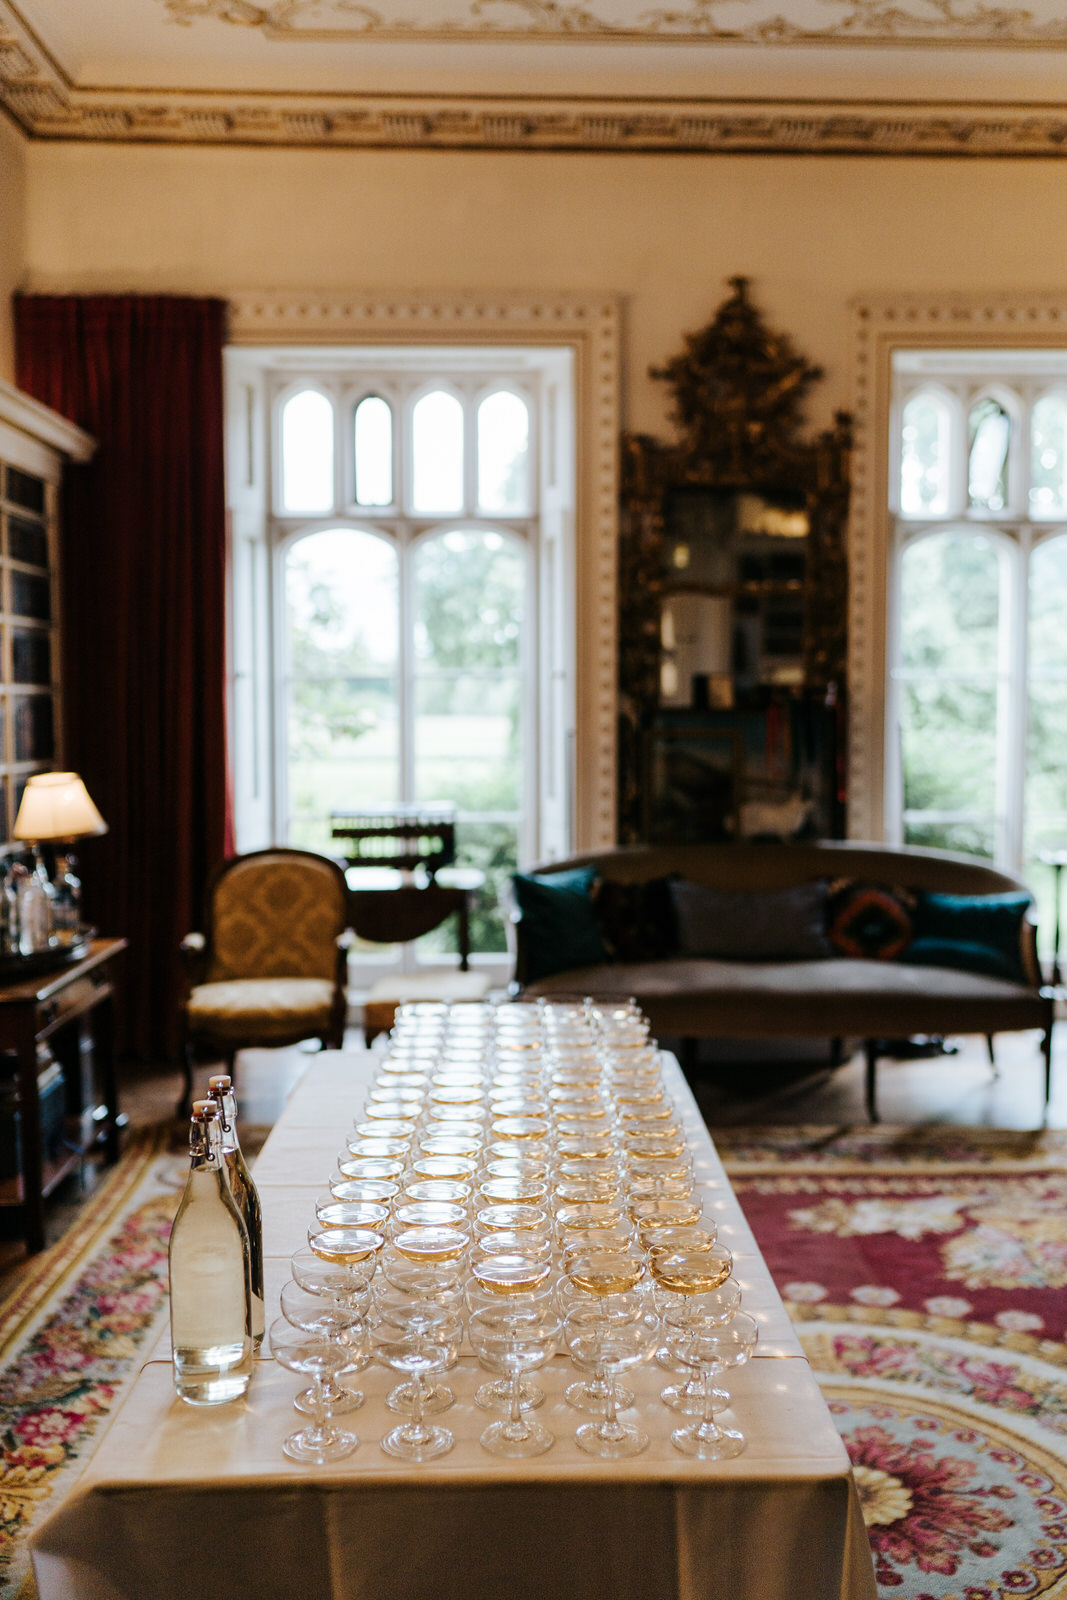 Wide photograph of the inside of Hawarden Castle focusing on a table filled with glasses and champagne